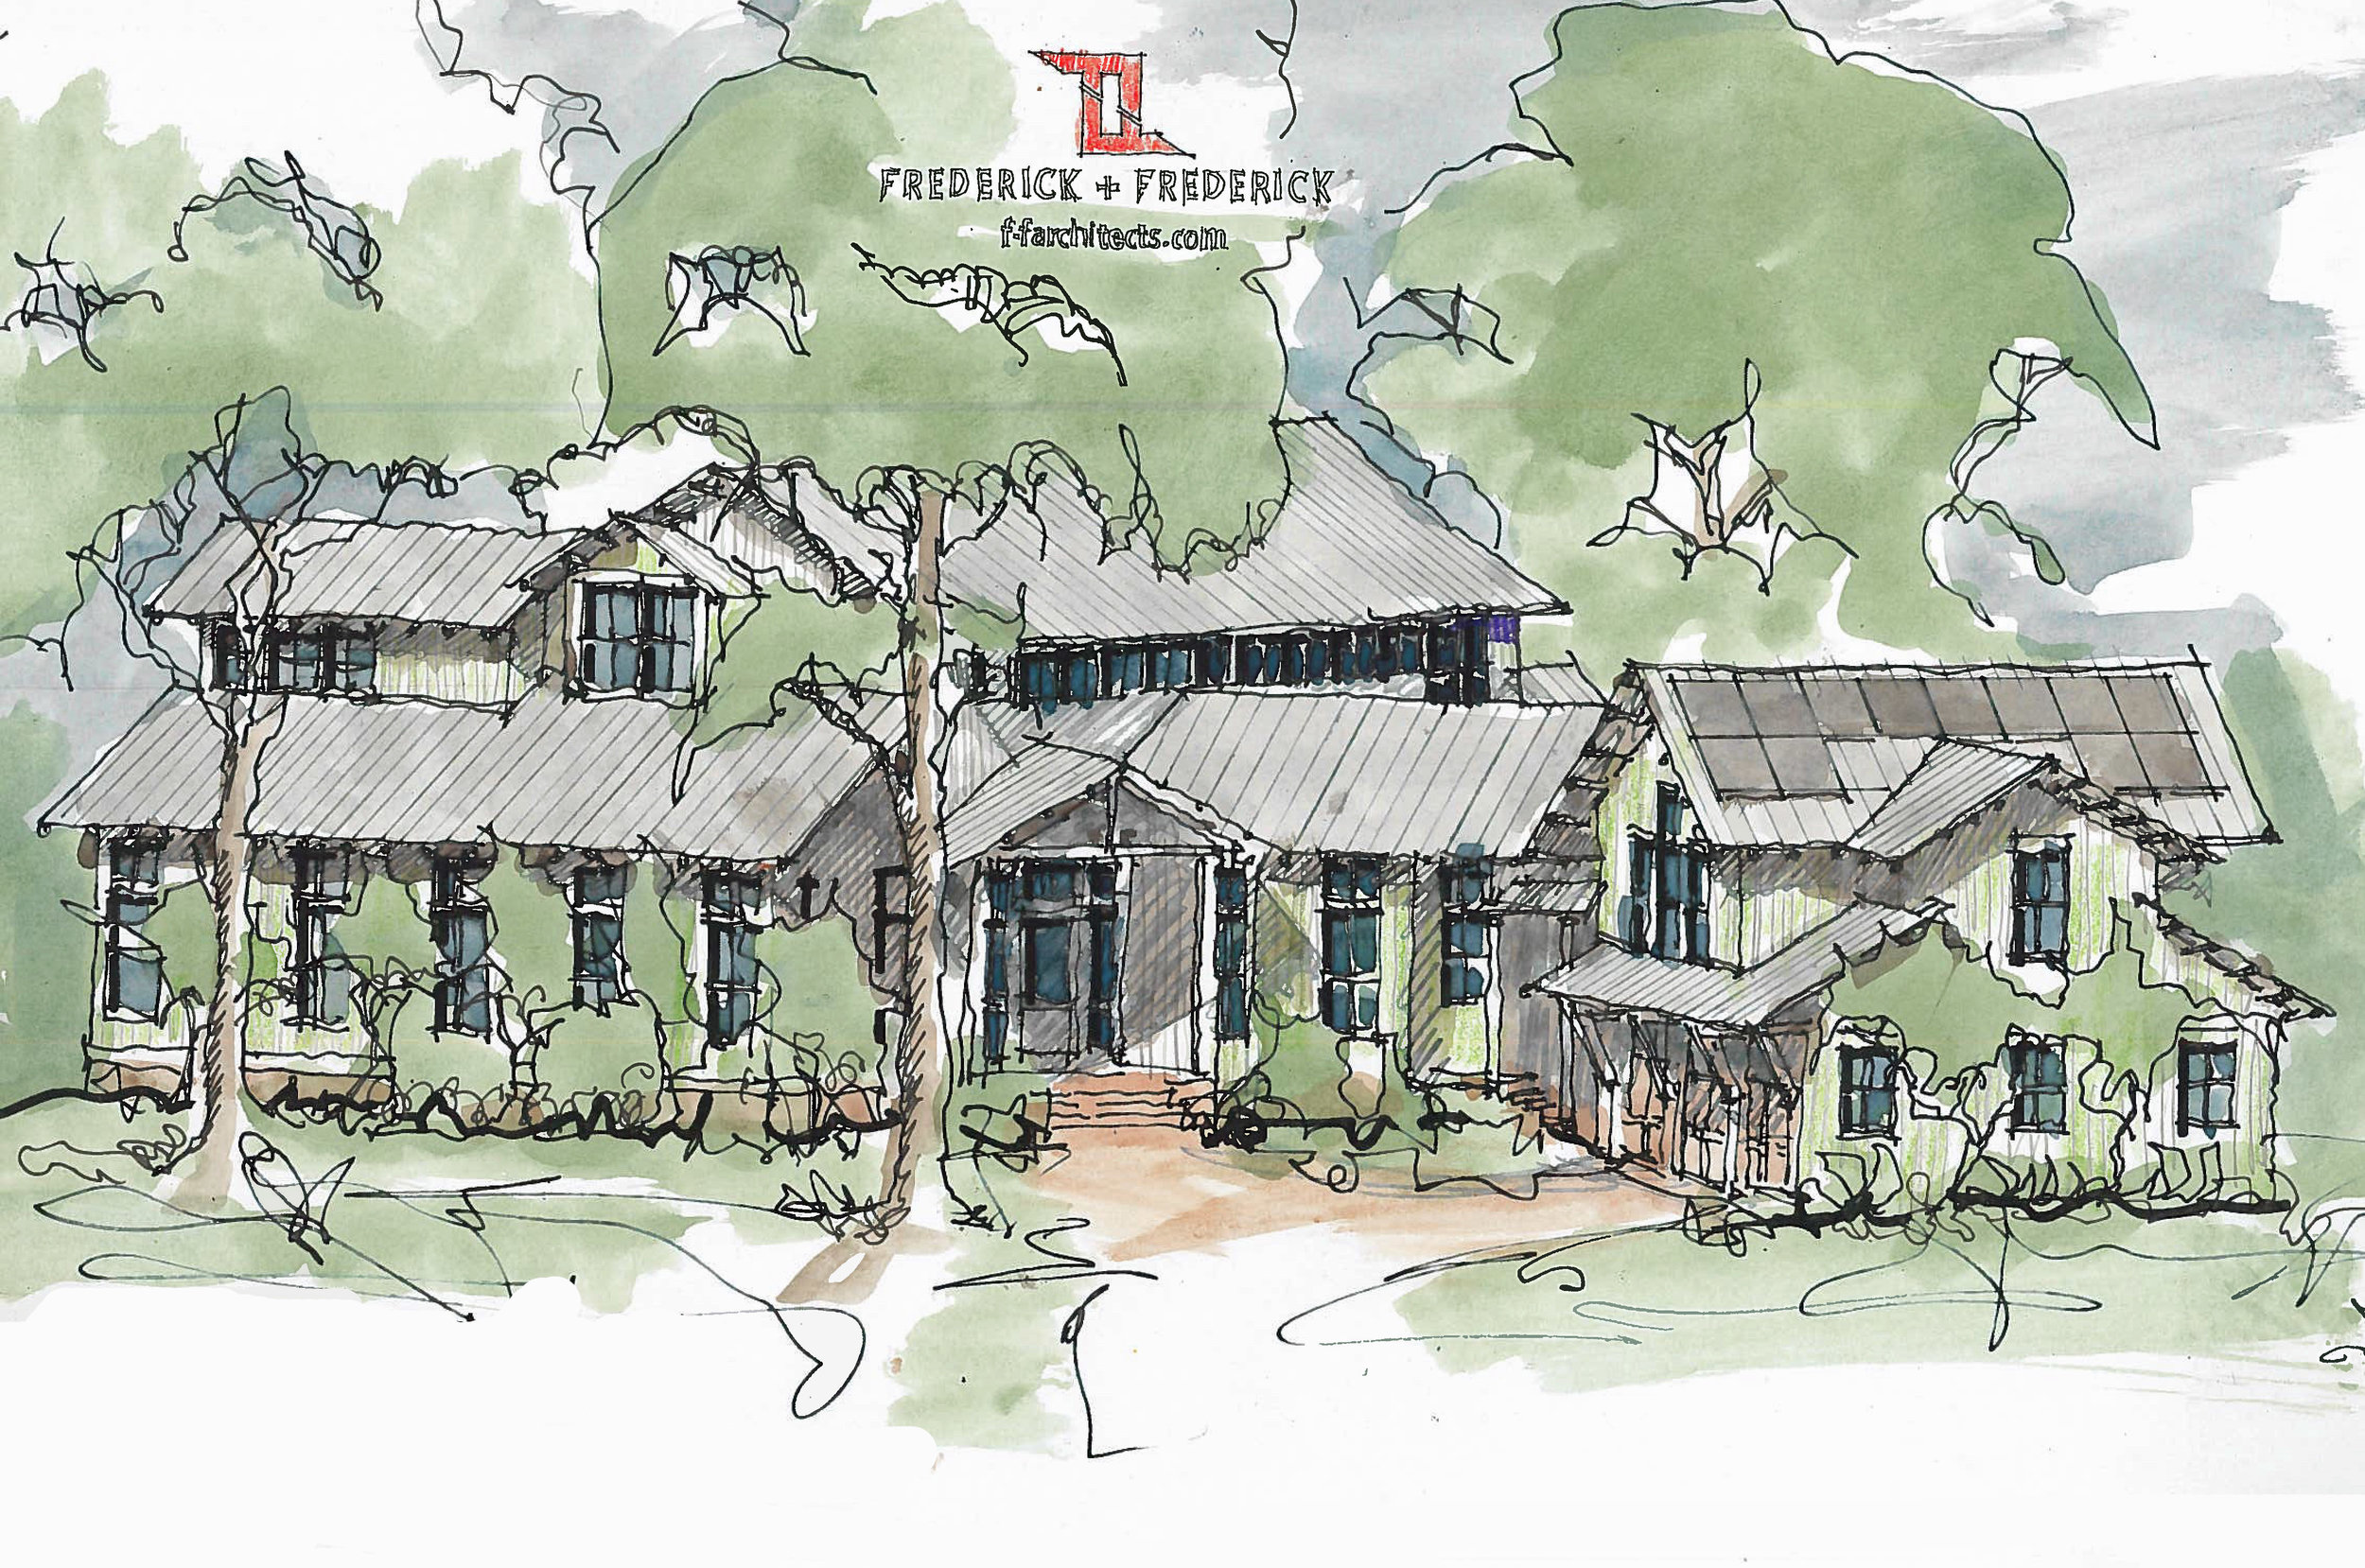 Here's a sketch with the carriage house shown.